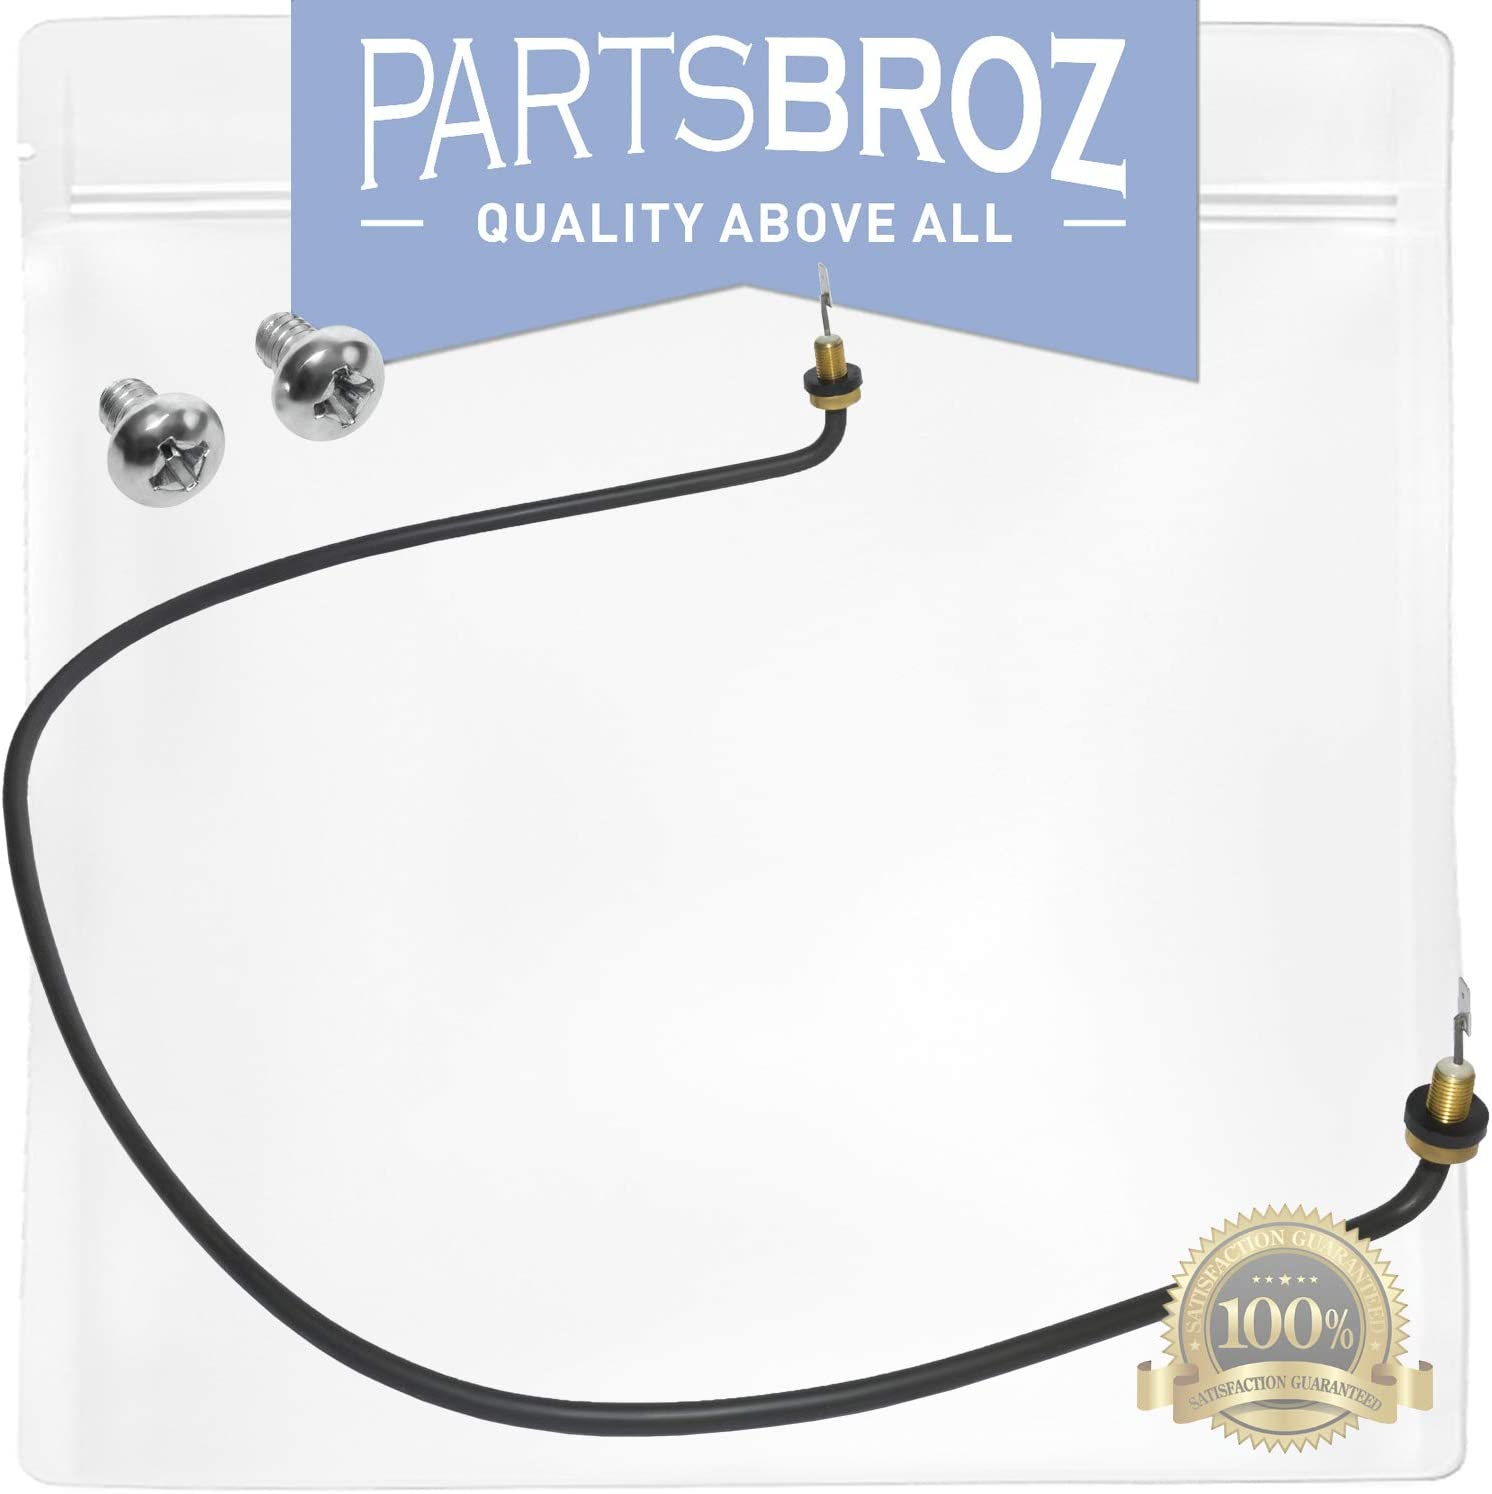 W10518394 Heating Element for Whirlpool Dishwashers by PartsBroz - Replaces Part Numbers AP5690151, 2977737, 8194250, 8563007, 8572861, PS8260087, W10134009, W10518394VP